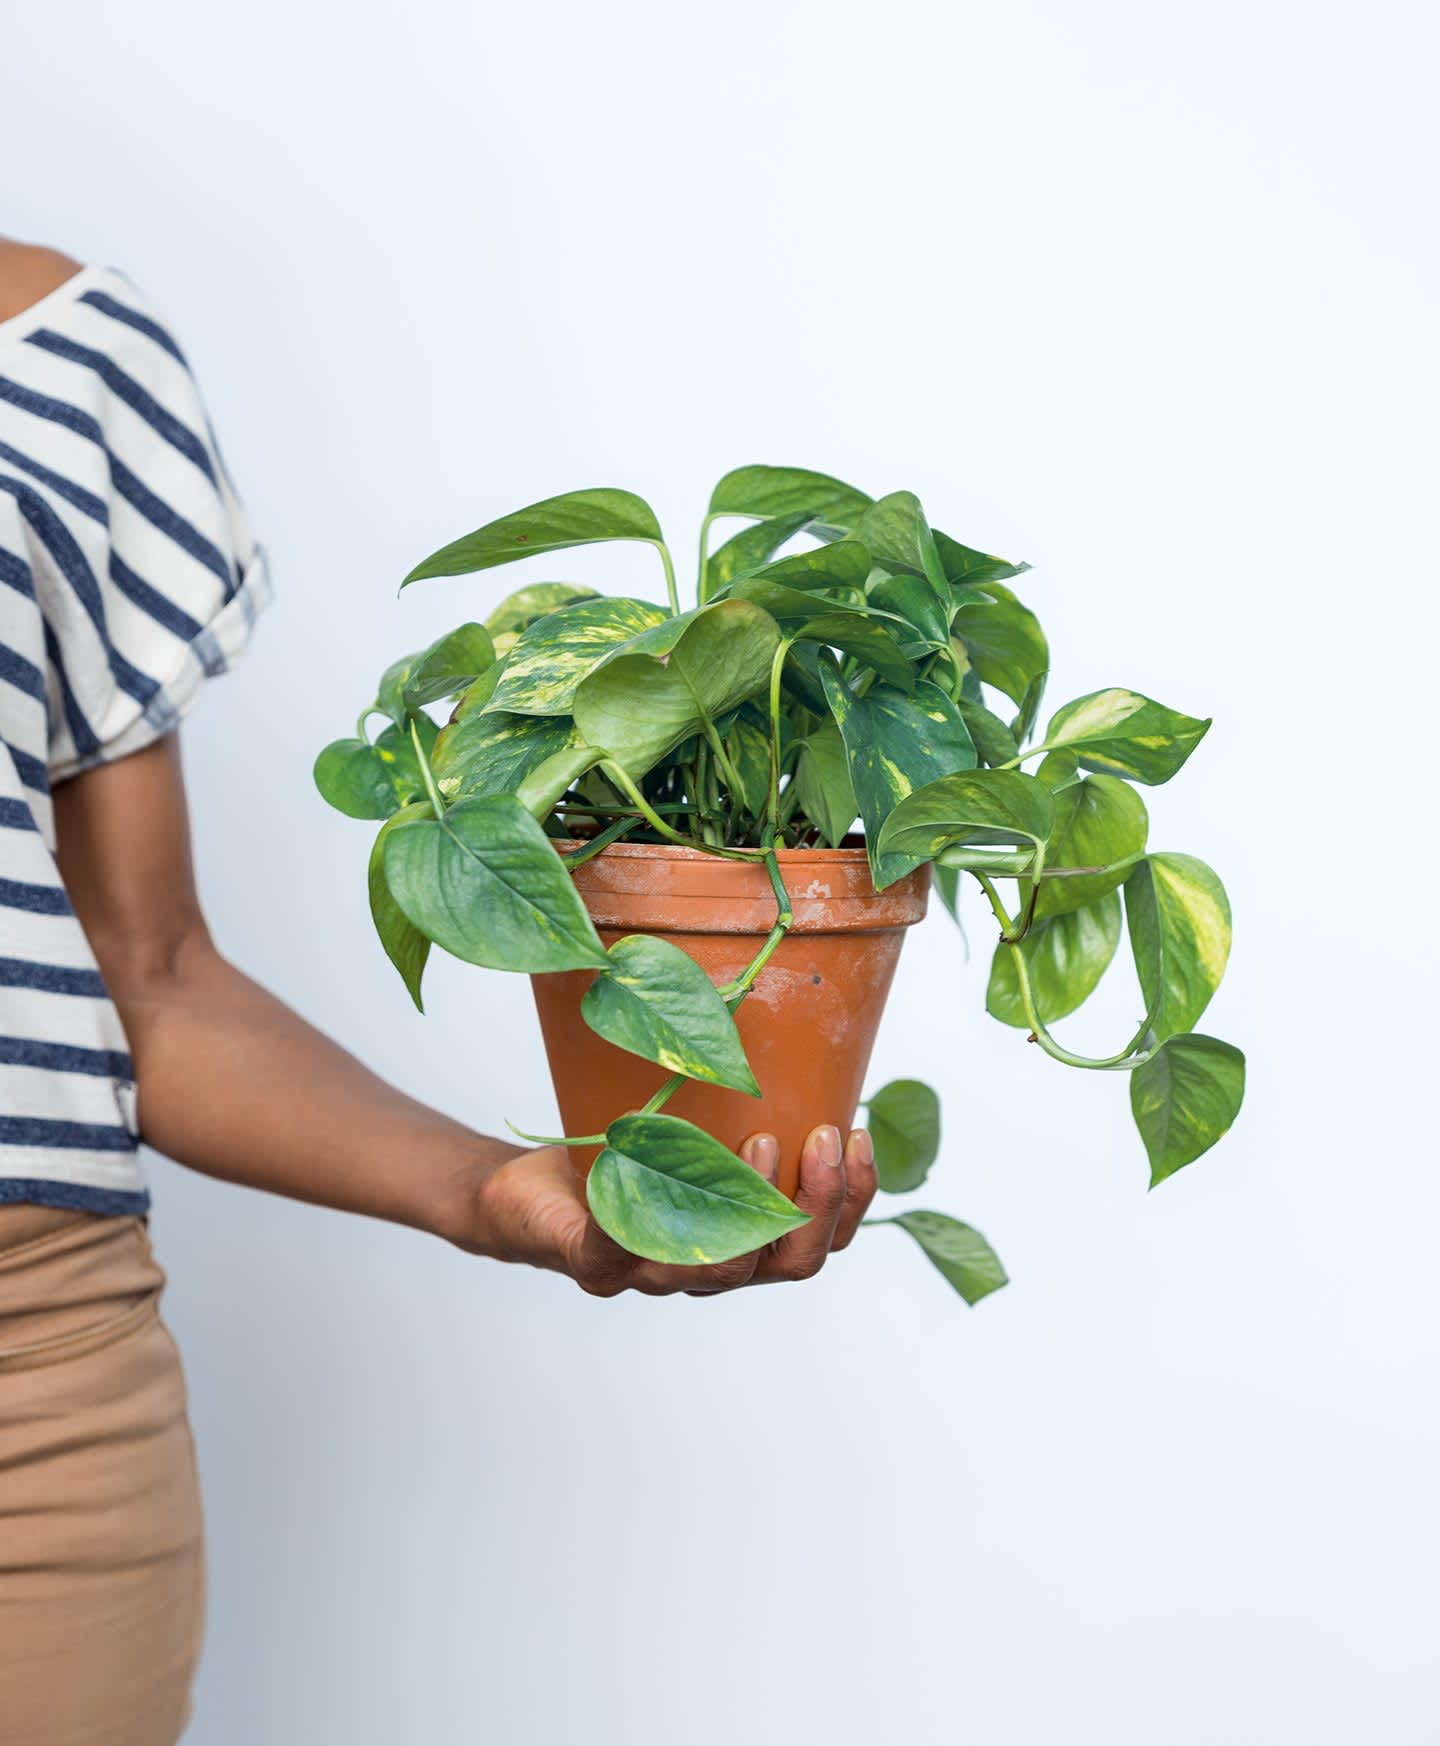 fdcebfea2bf Budget-Friendly Sources for Buying Plants Online